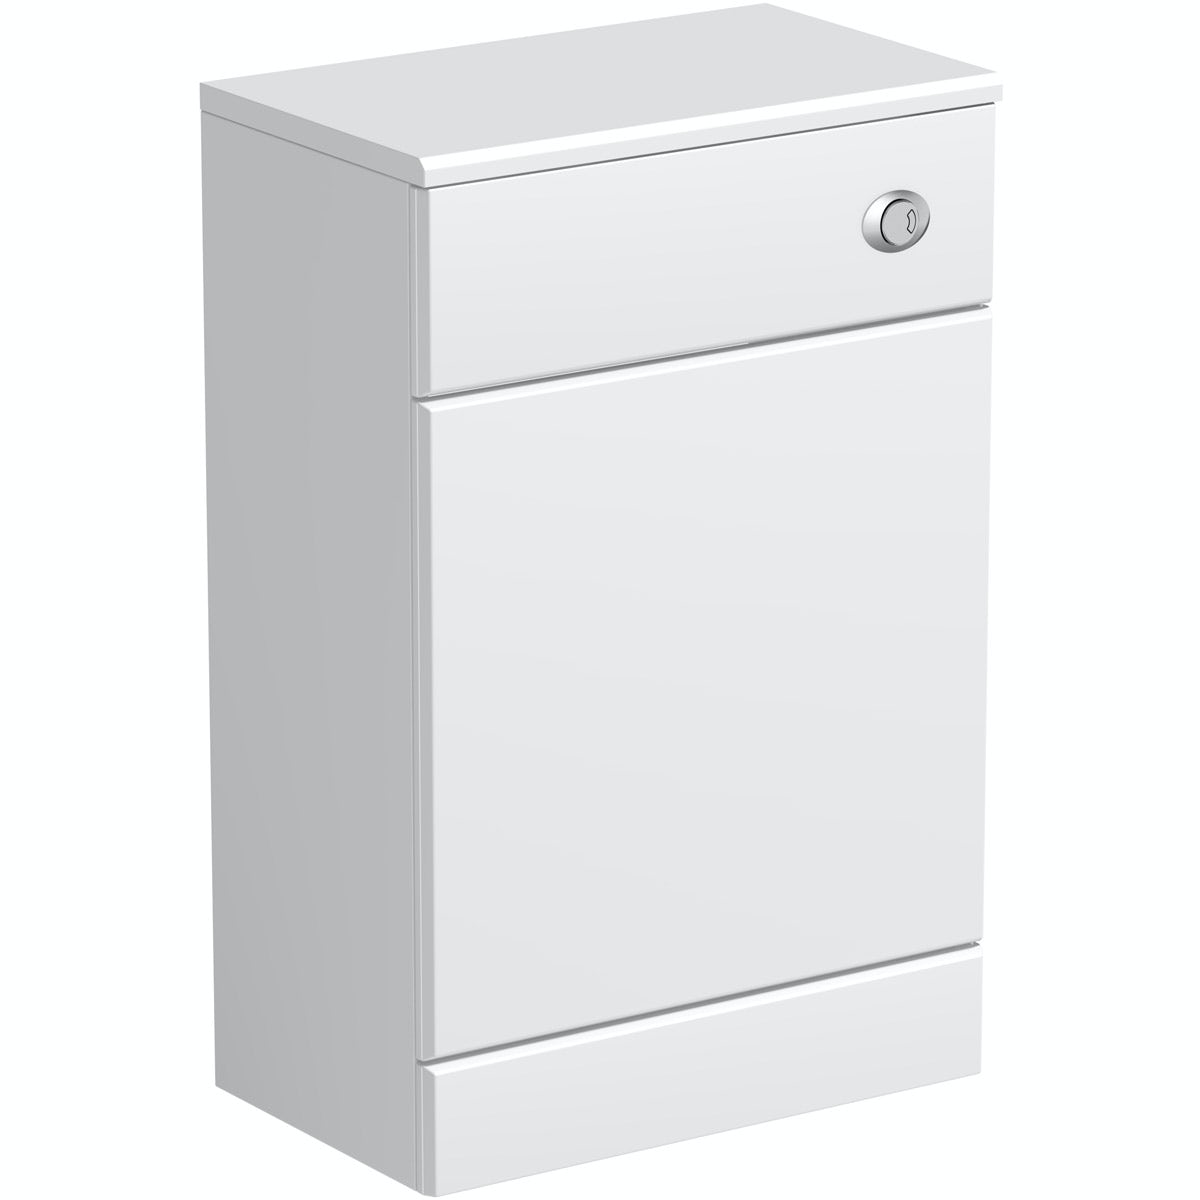 Orchard Eden white slimline back to wall toilet unit